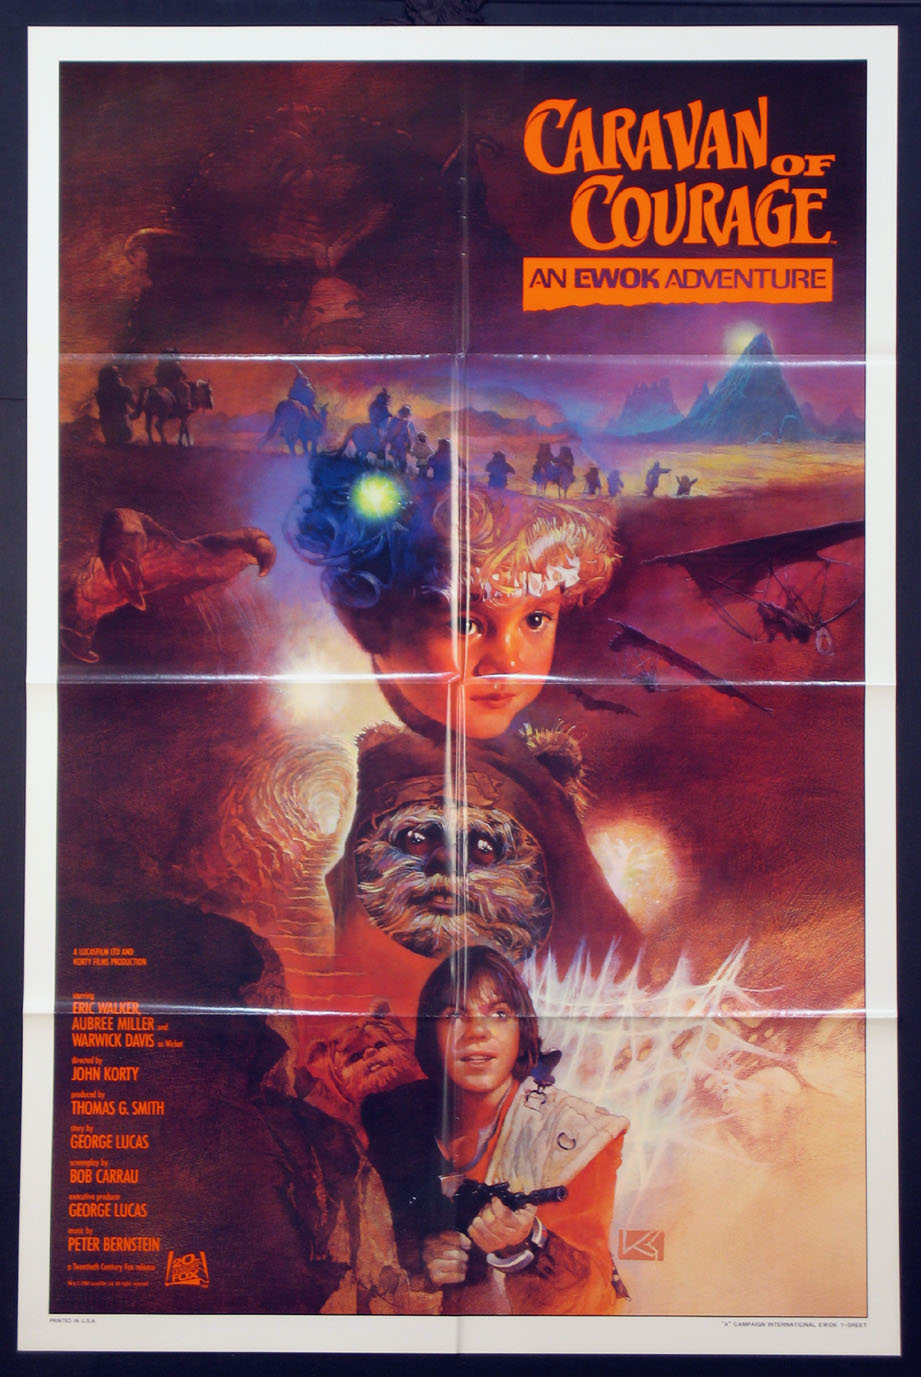 CARAVAN OF COURAGE: AN EWOK ADVENTURE @ FilmPosters.com